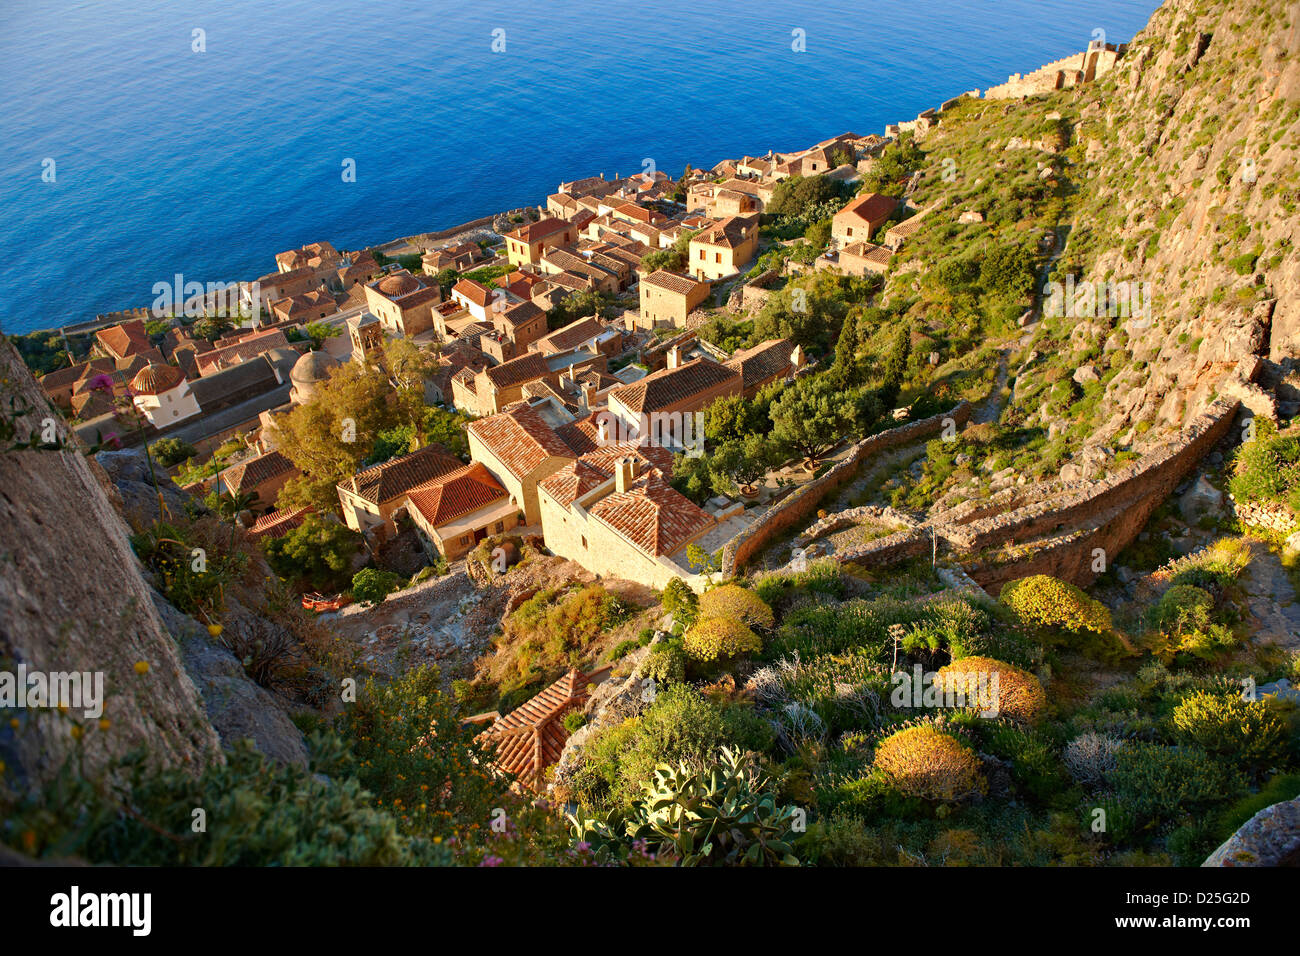 Arial view of Monemvasia Byzantine Island catsle town with acropolis on the plateau. Peloponnese, Greece - Stock Image